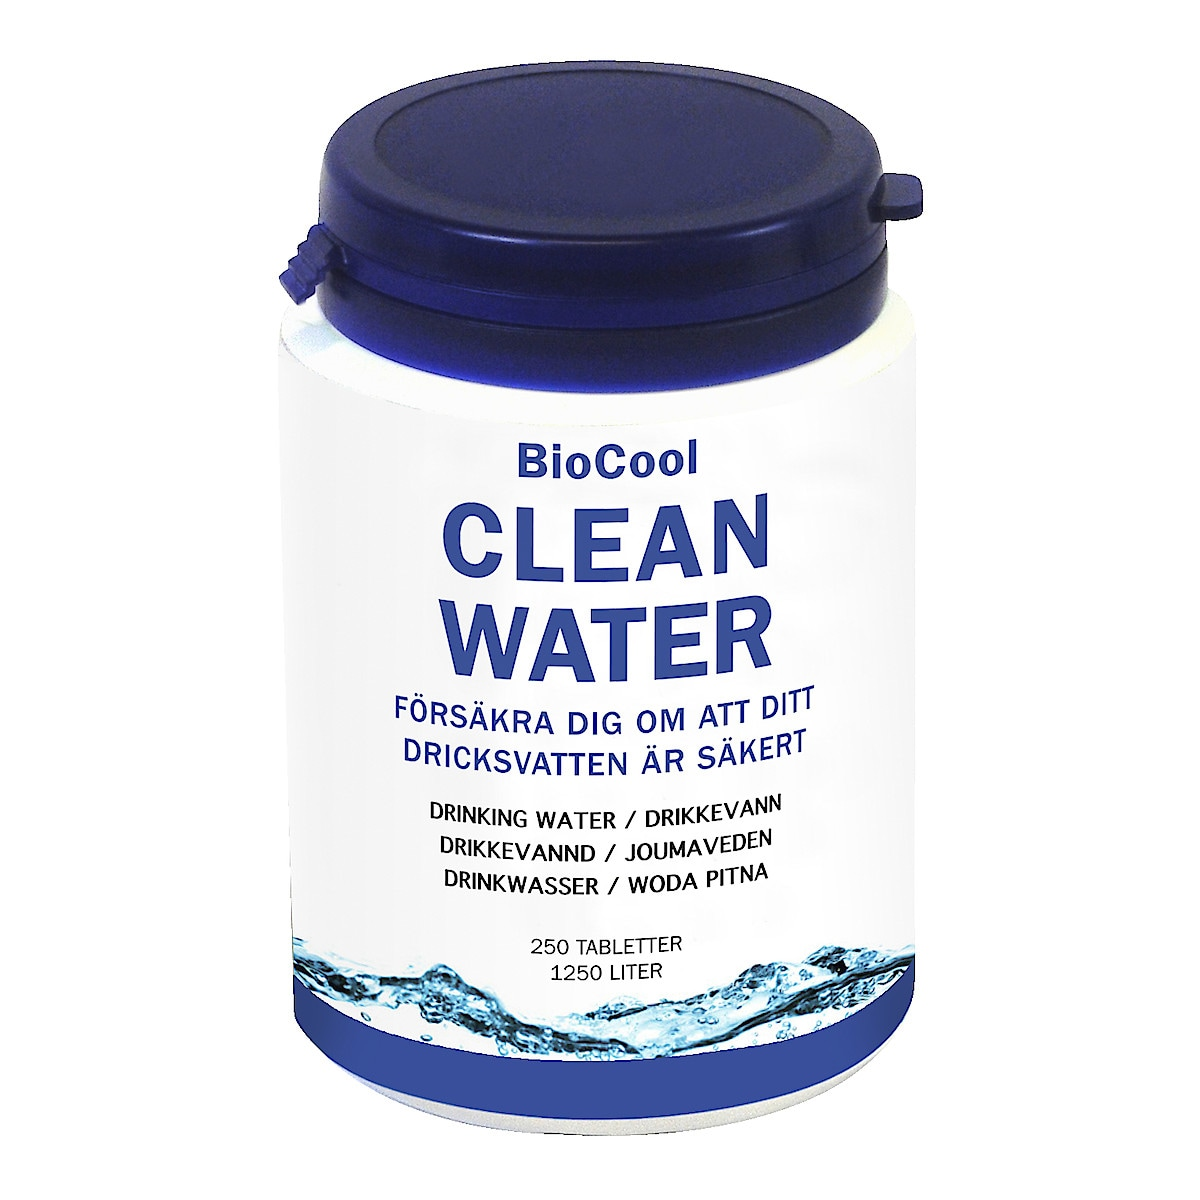 BioCool Clean Water tabletter for desinfisering